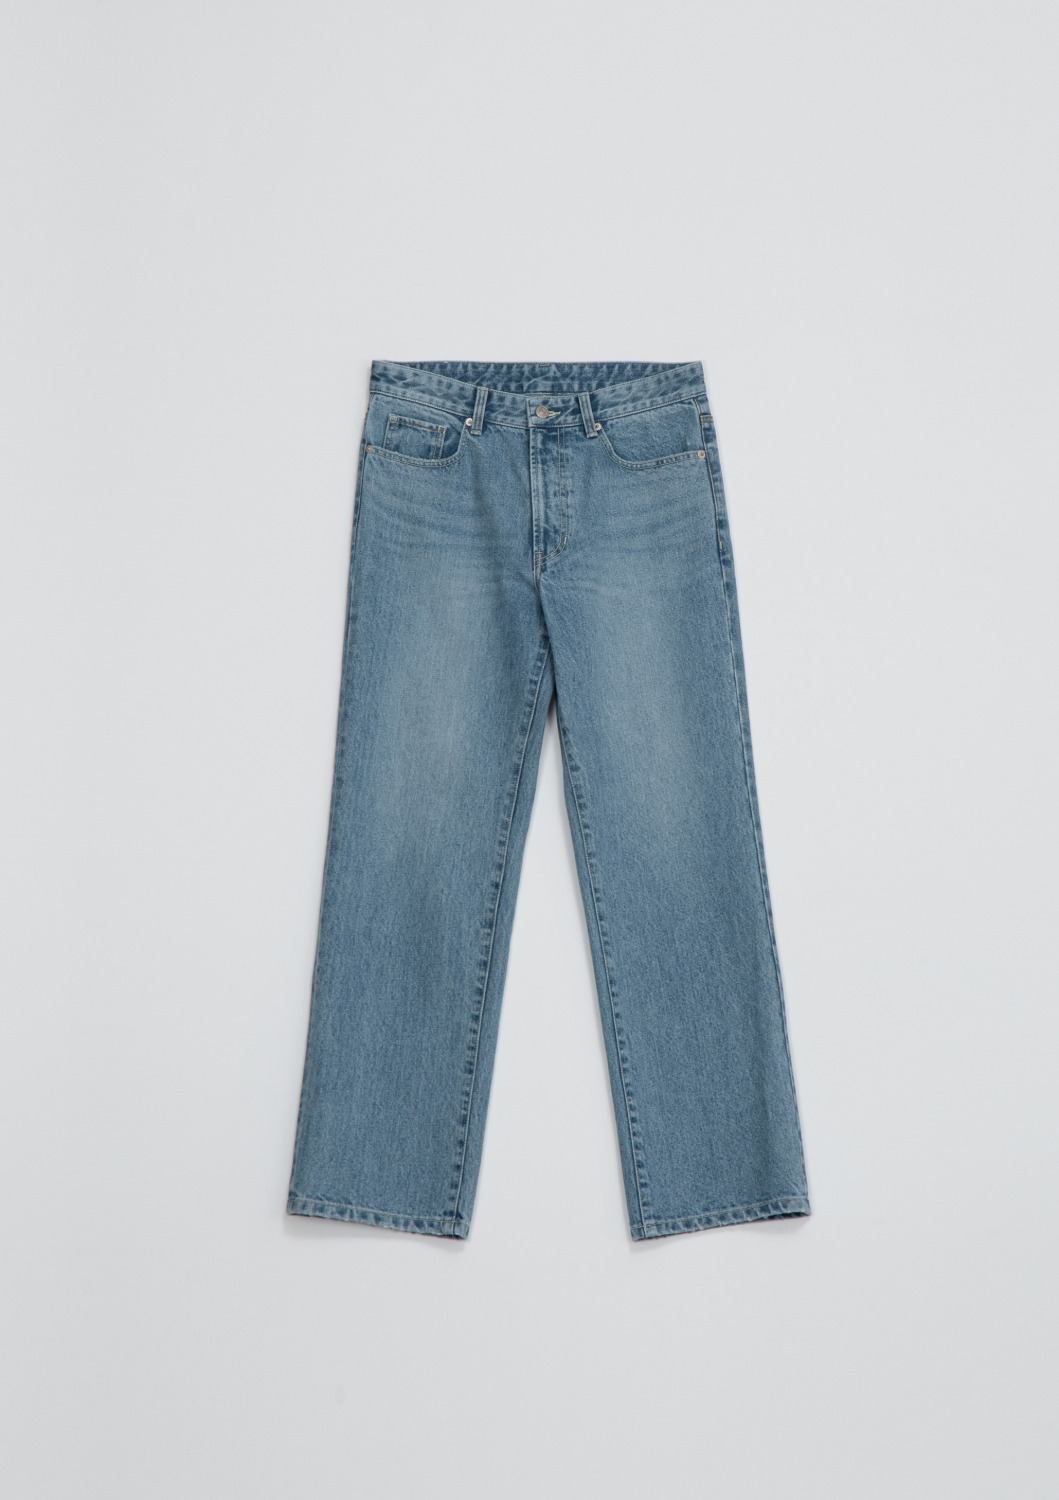 Matin Lowrise Boyfreinds Fit Jean - Light Blue